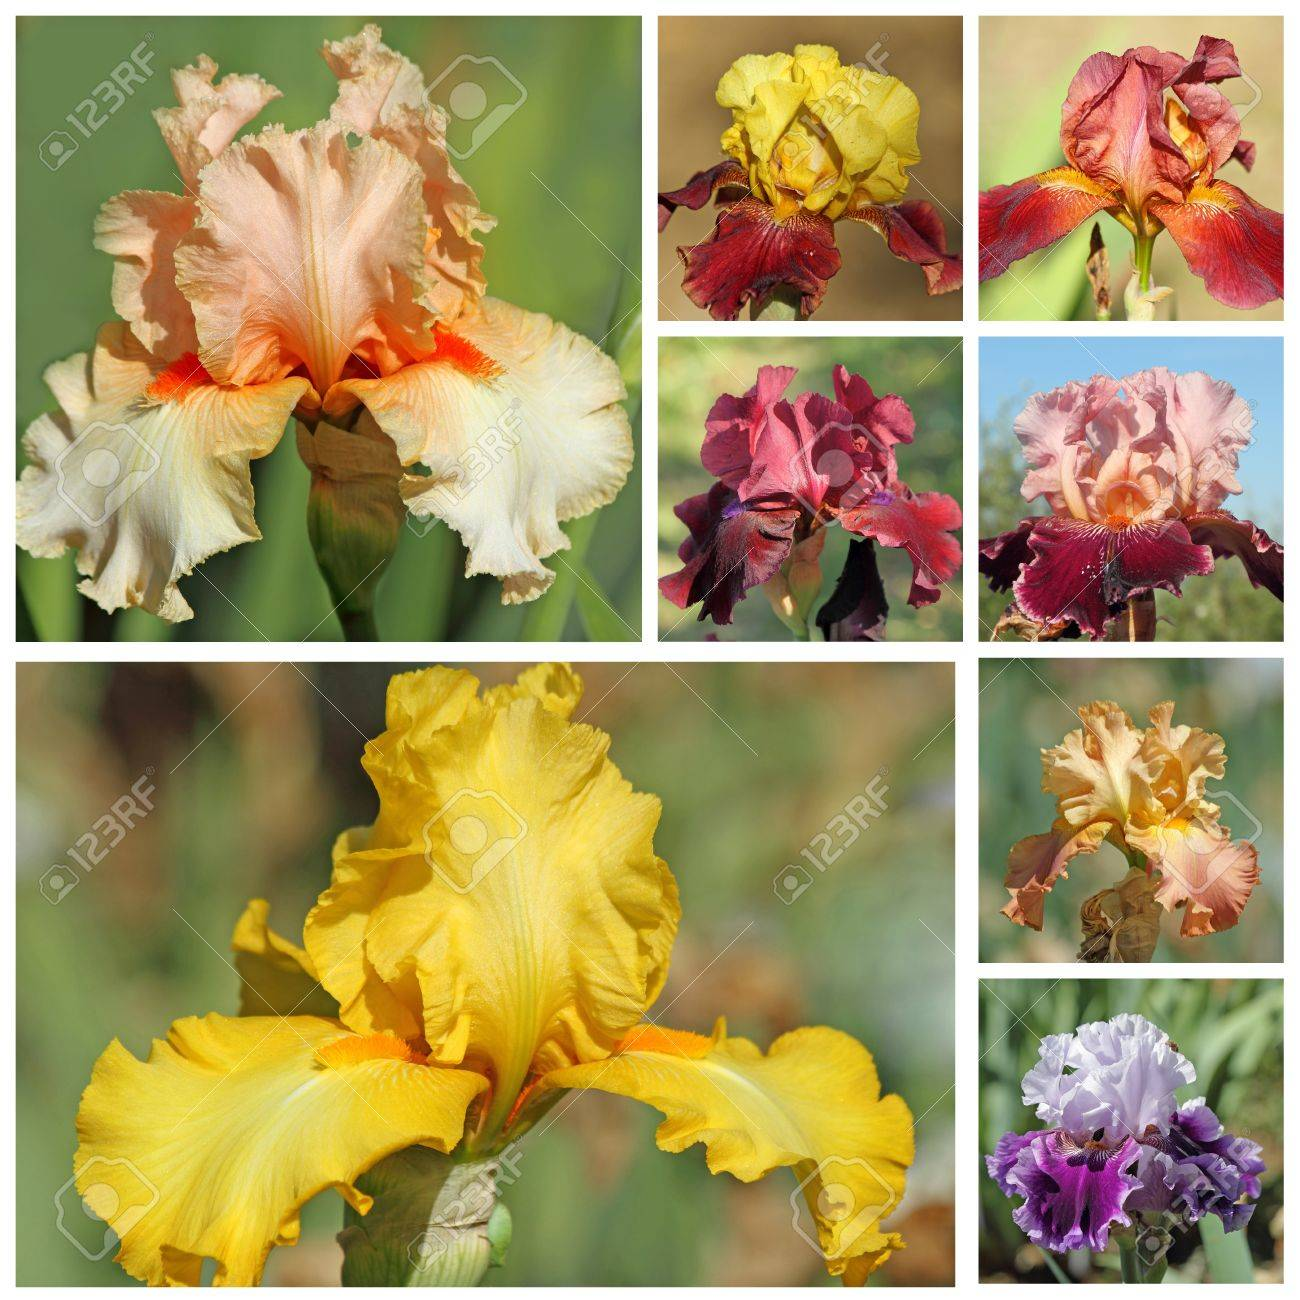 Collage with bearded iris flowers images from garden of iris collage with bearded iris flowers images from garden of iris in florence stock photo izmirmasajfo Image collections